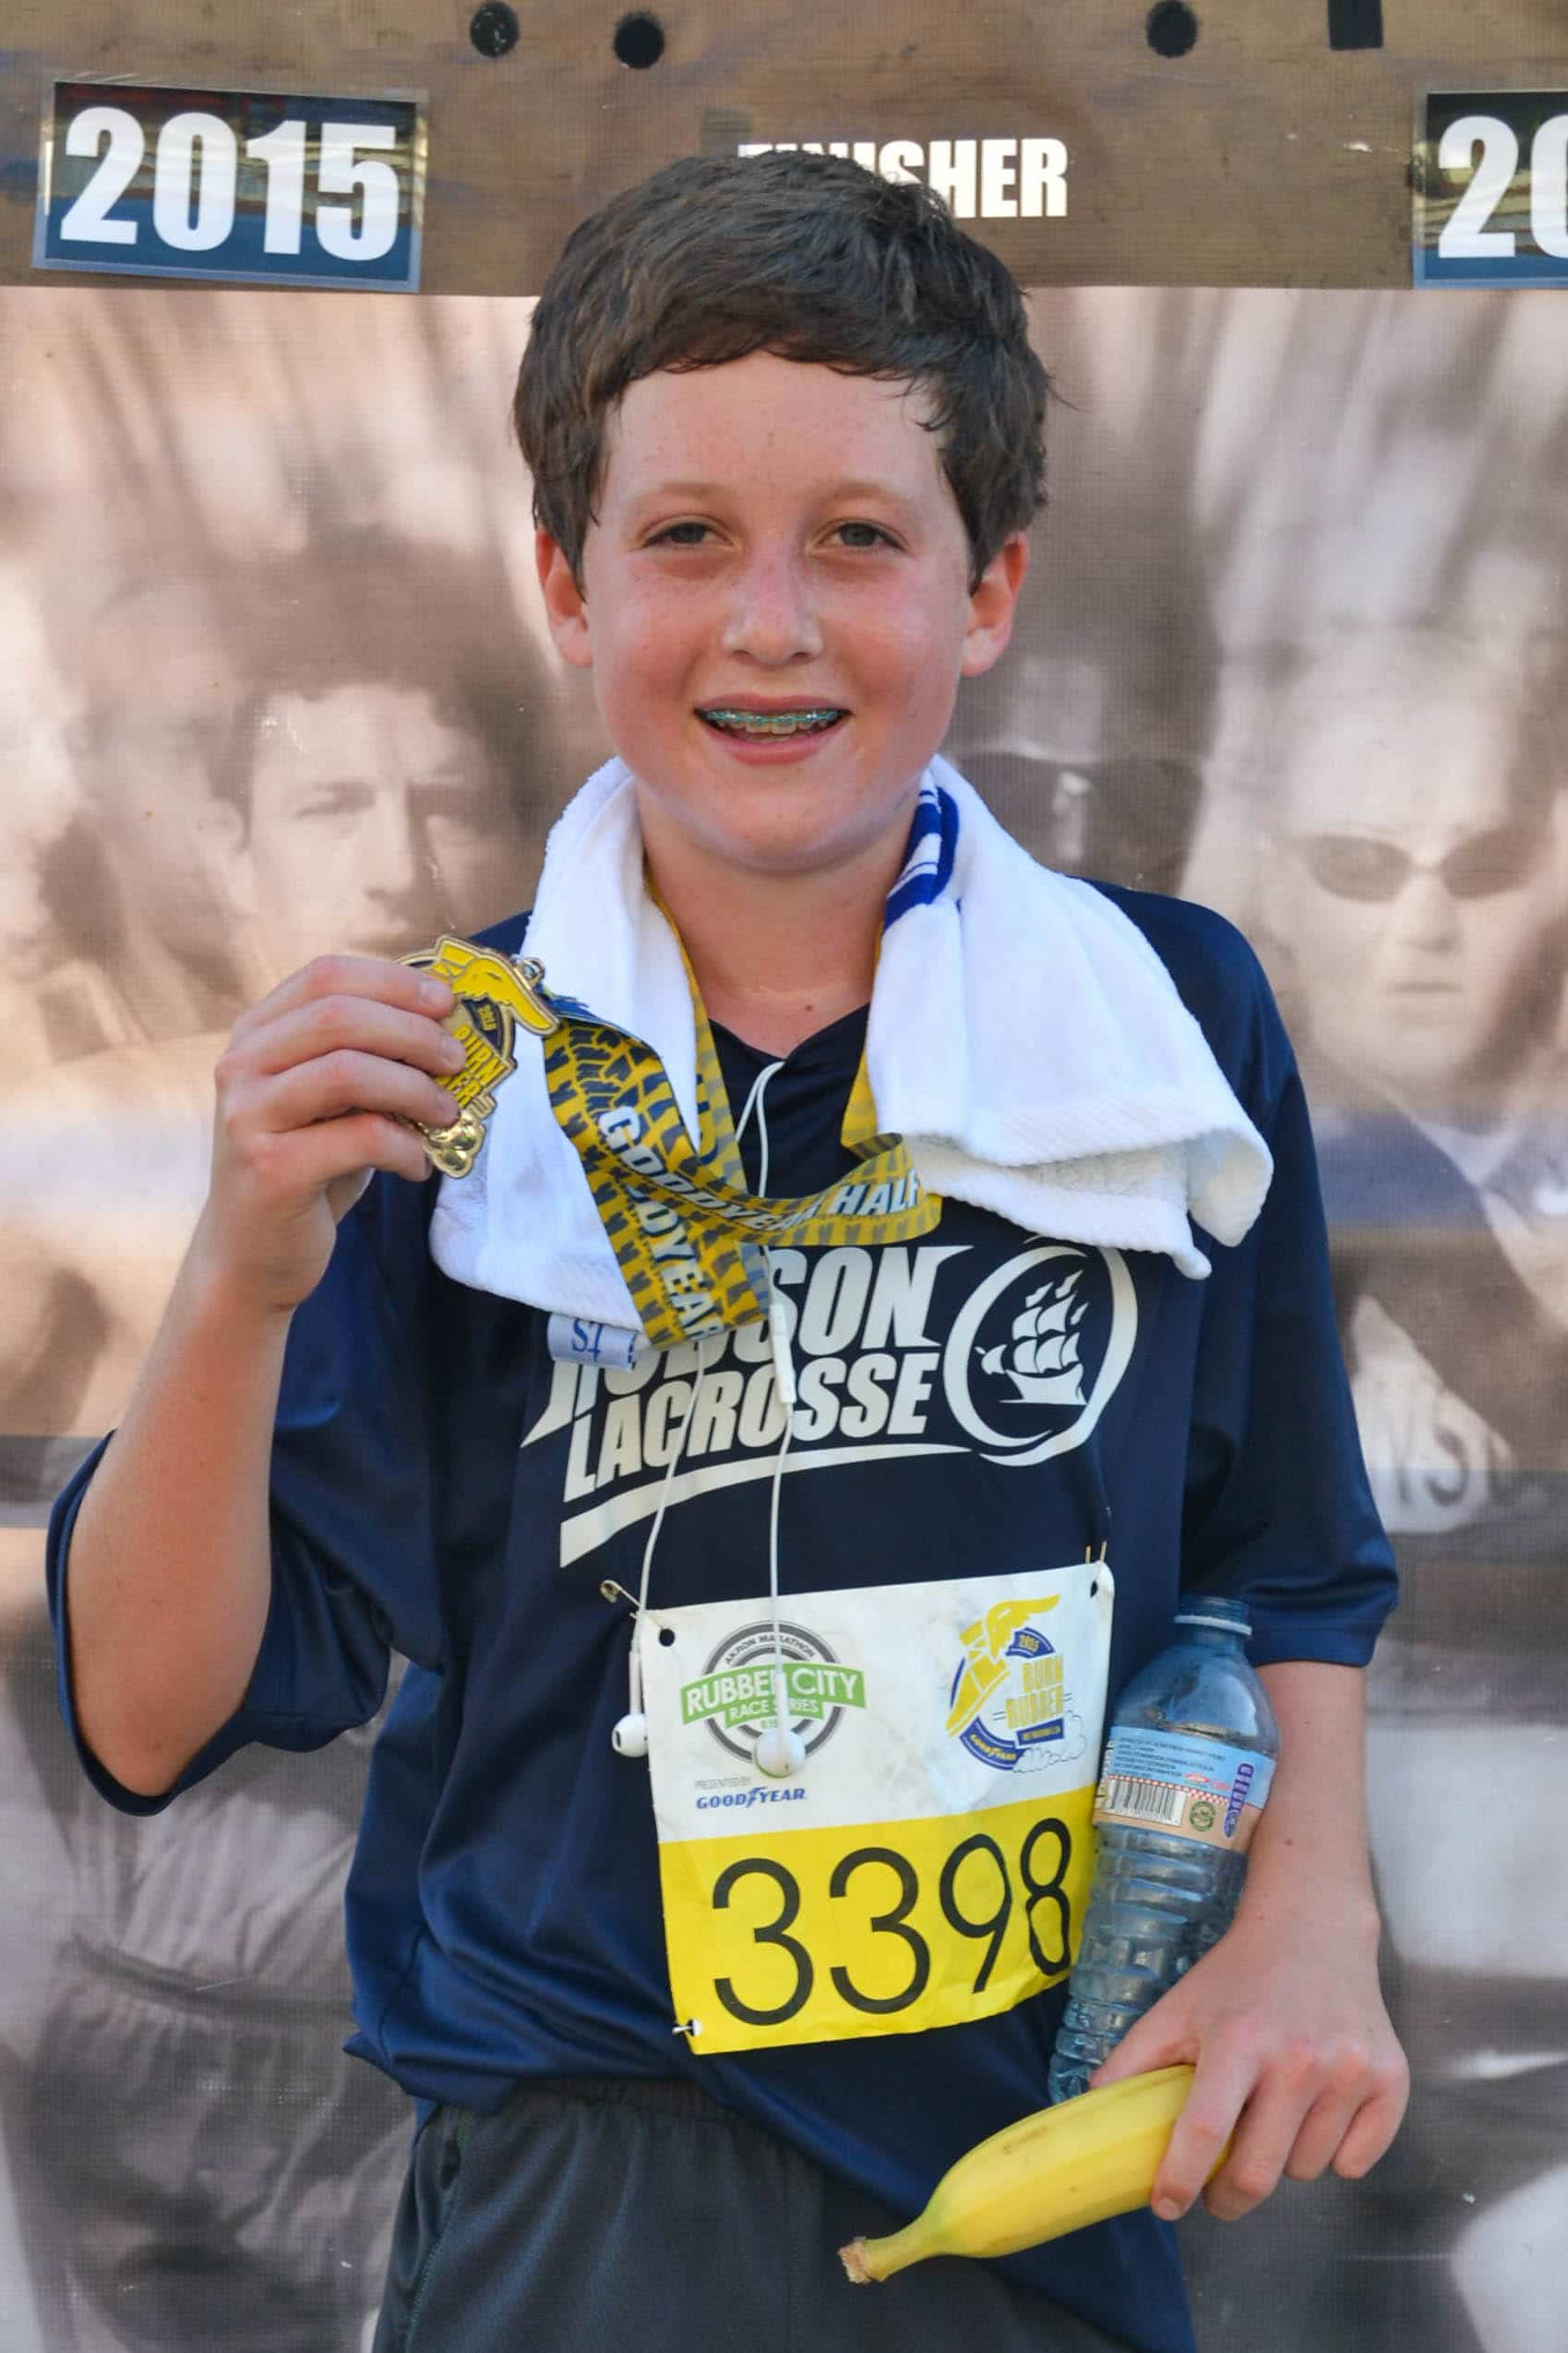 Ty with Medal